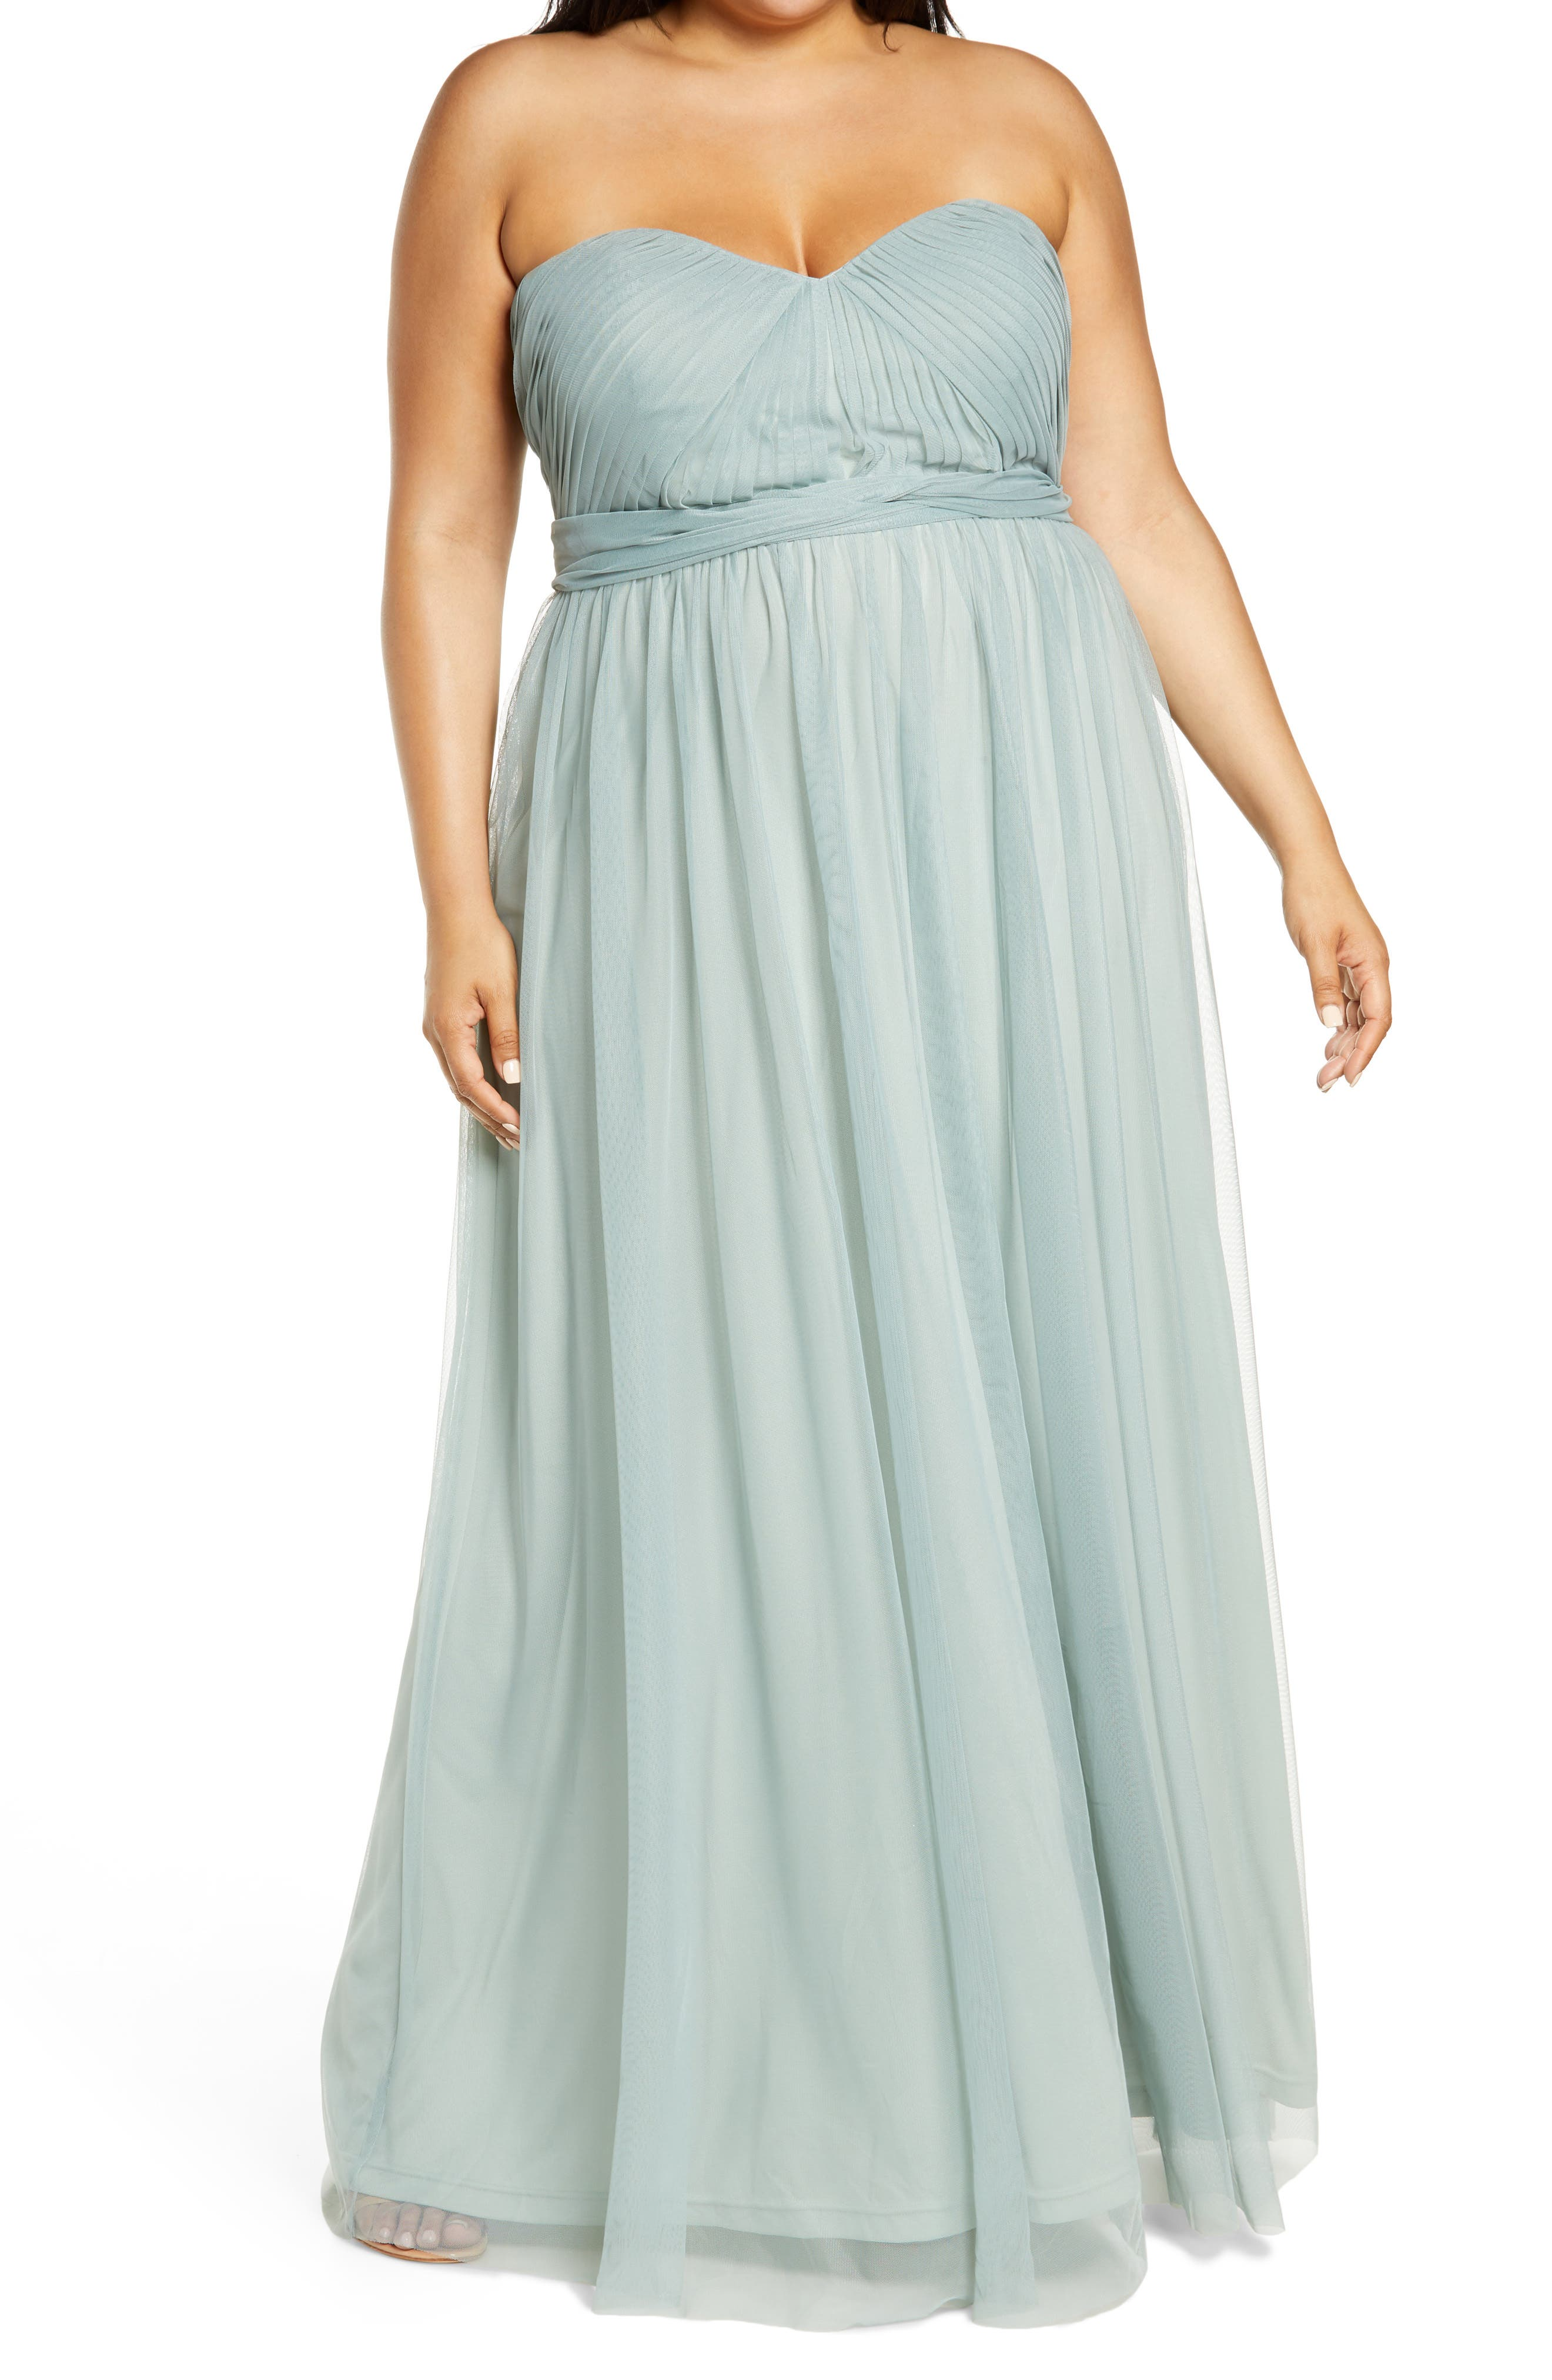 Plus Size Swing Dresses, Vintage Dresses Womens Birdy Grey Christina Convertible Tulle Gown Size XX-Large - Green $99.00 AT vintagedancer.com